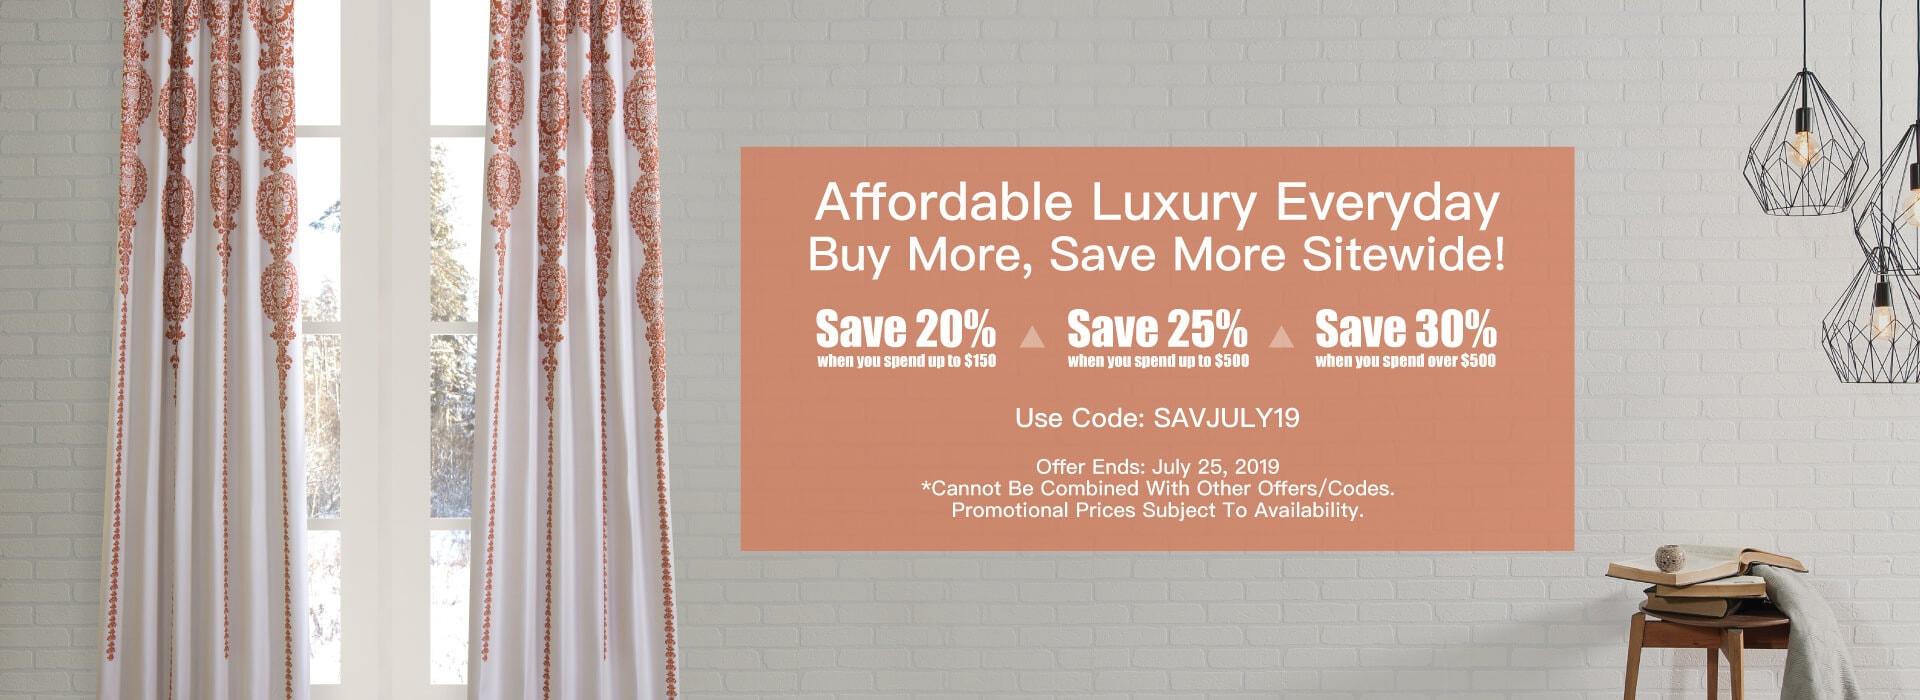 SAVJULY19 - Buy More, Save More! $0 to $149.99 - 20% $150 to $499.99 - 25% $500 & more - 30%